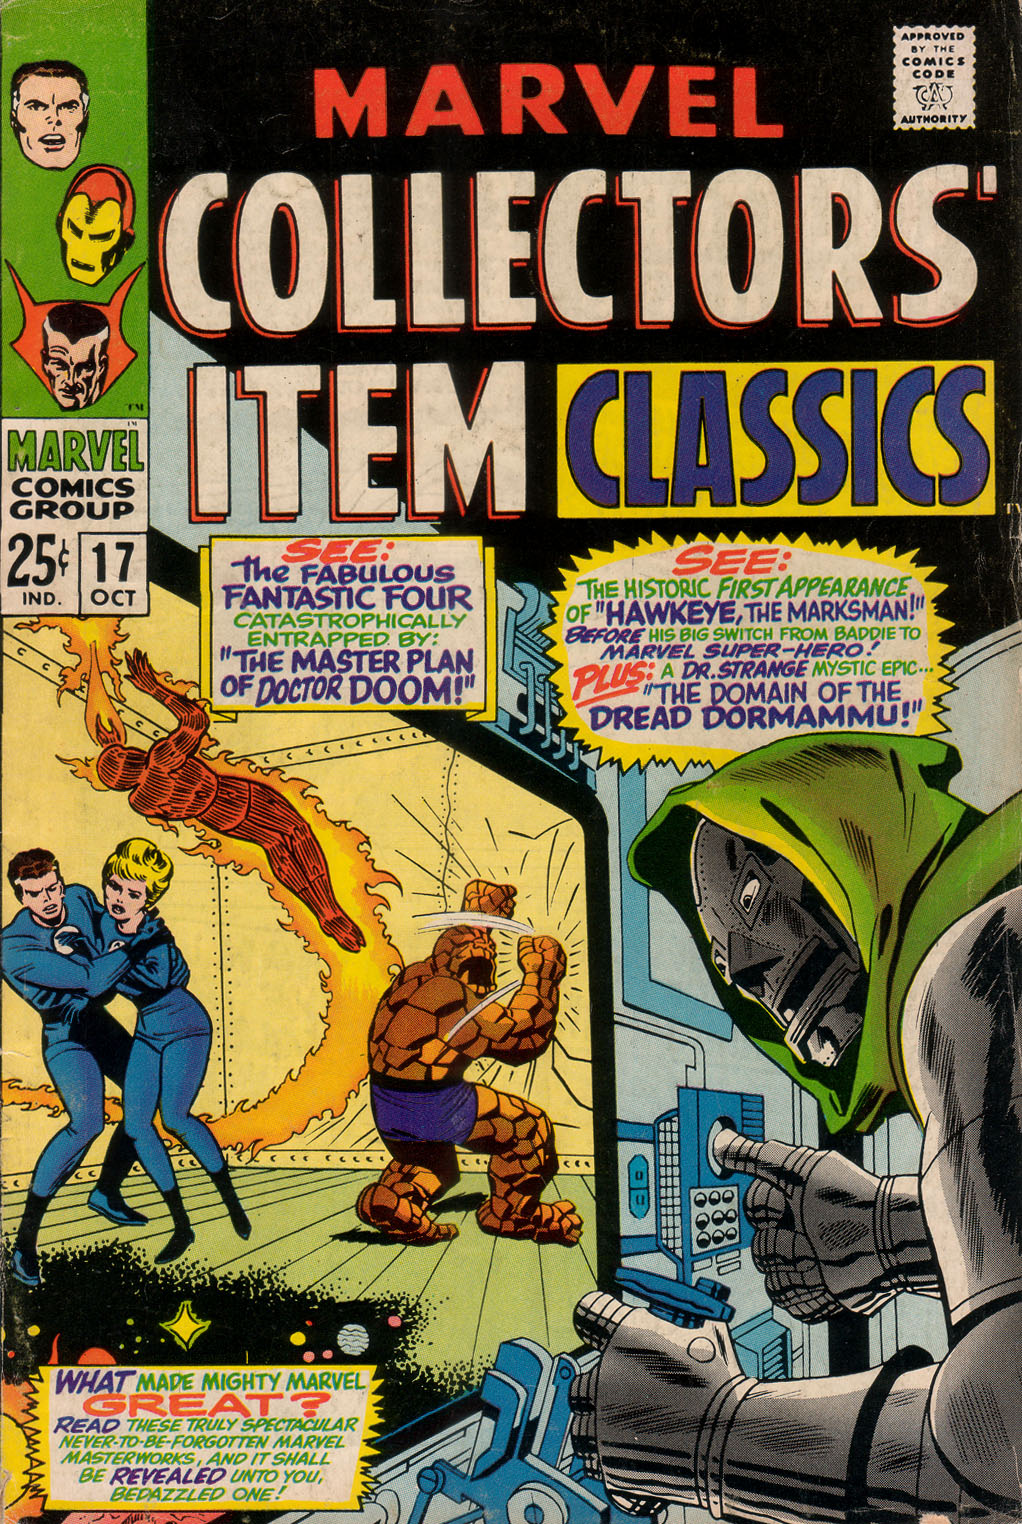 Marvel Collectors Item Classics issue 17 - Page 1